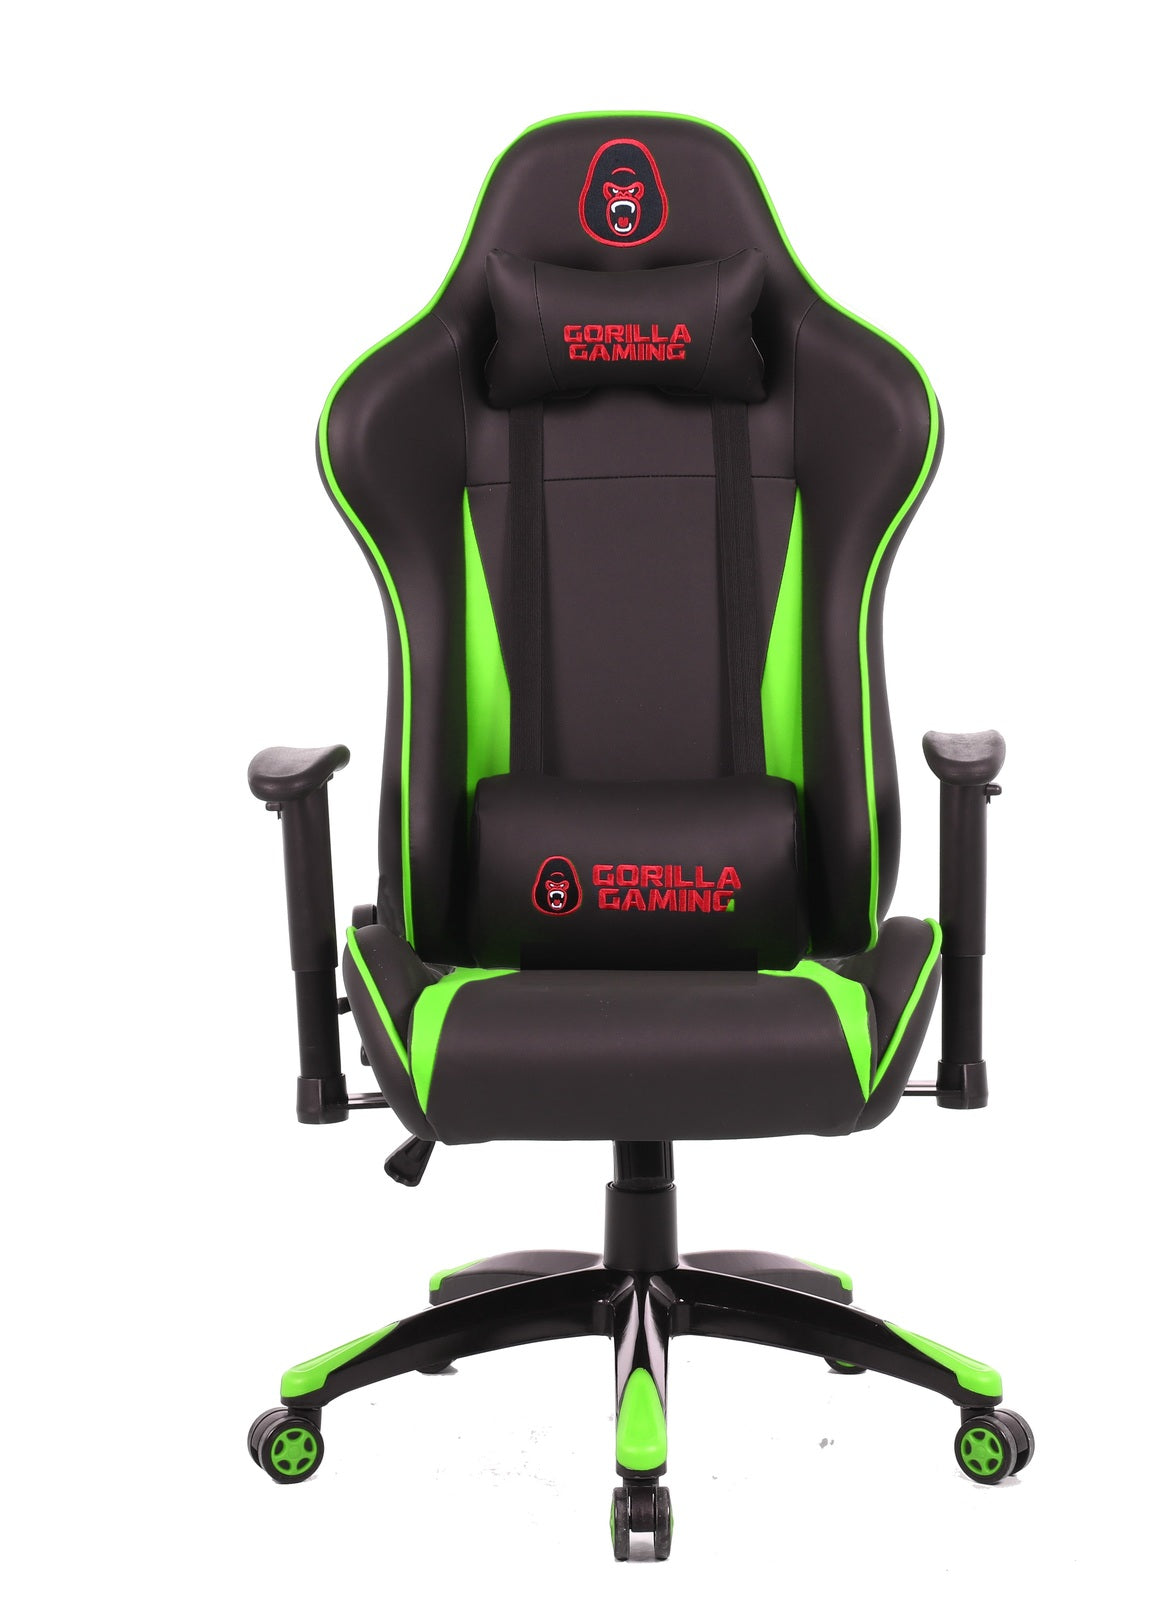 Gorilla Gaming Commander Chair - Green & Black